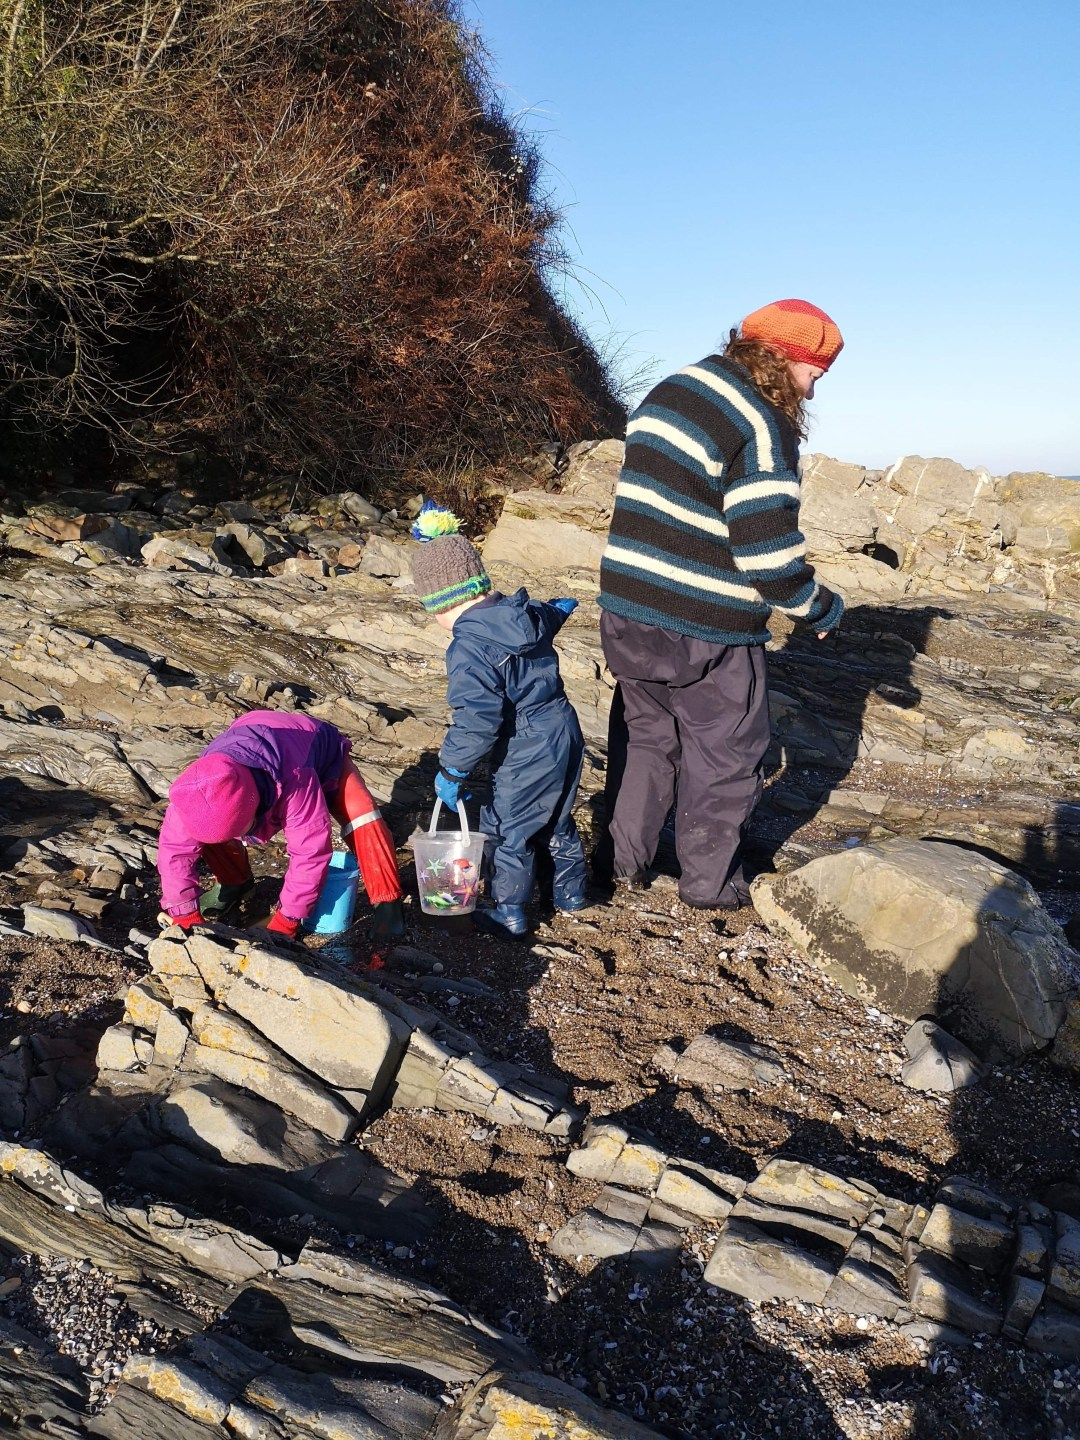 rockpooling in winter